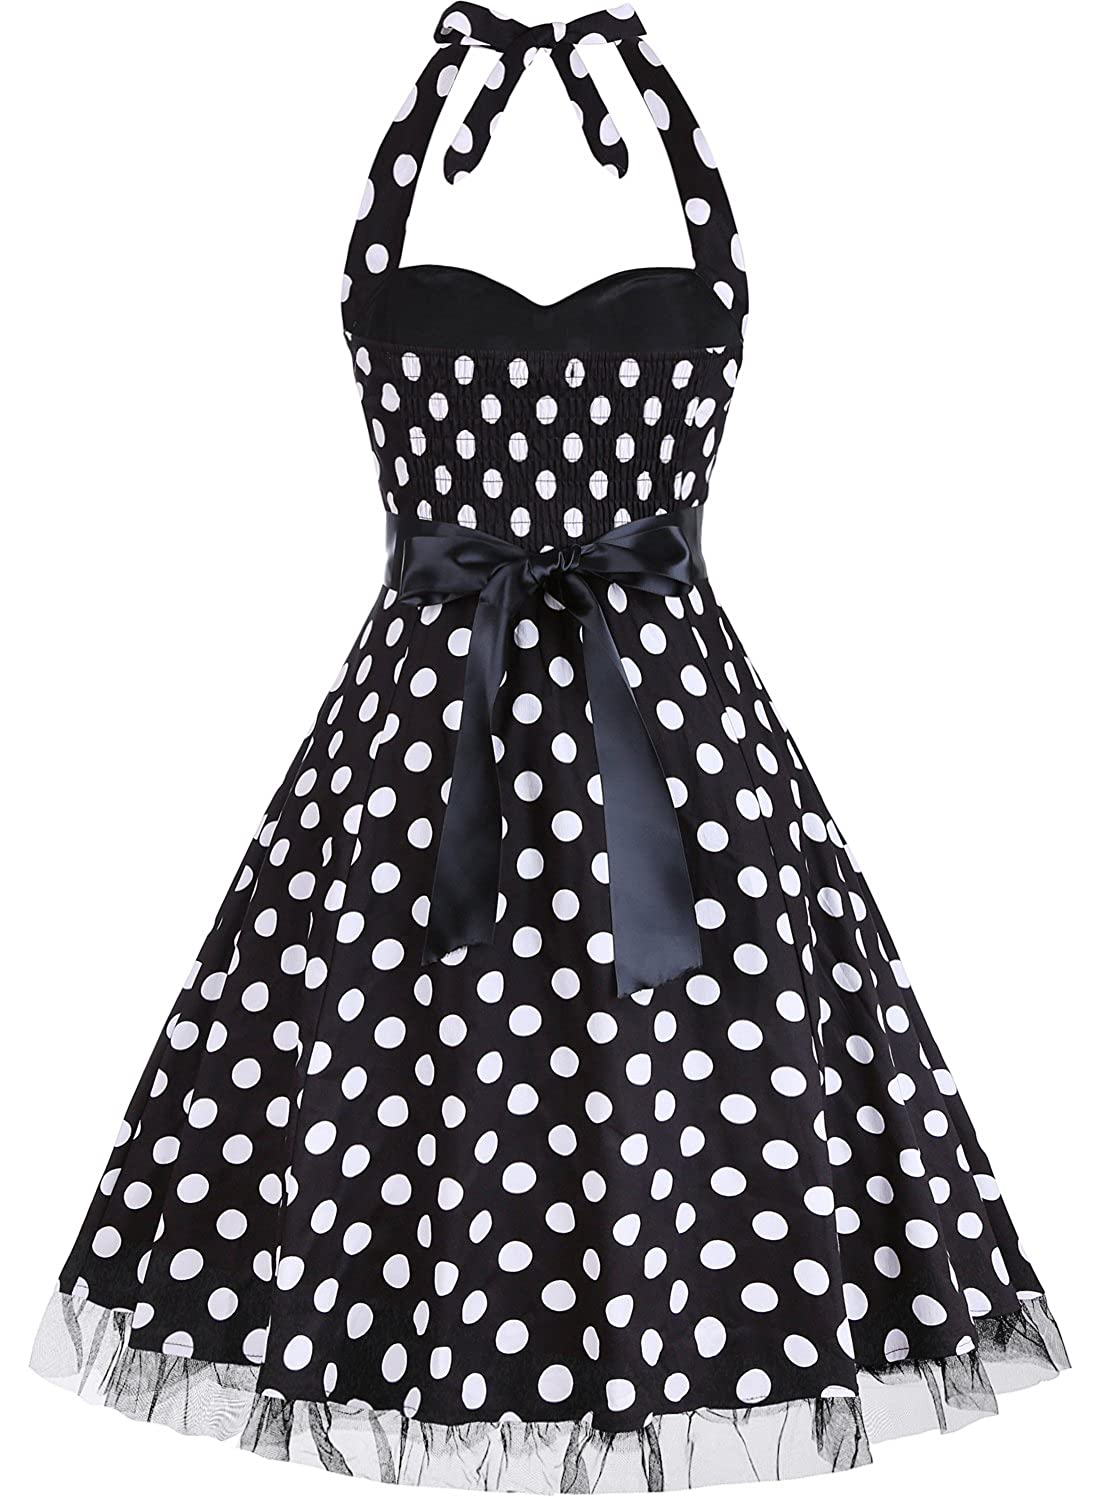 a278139374e OTEN Women s Vintage Polka Dot Halter Dress 1950s Floral Sping Retro  Rockabilly Cocktail Swing Tea Dresses at Amazon Women s Clothing store